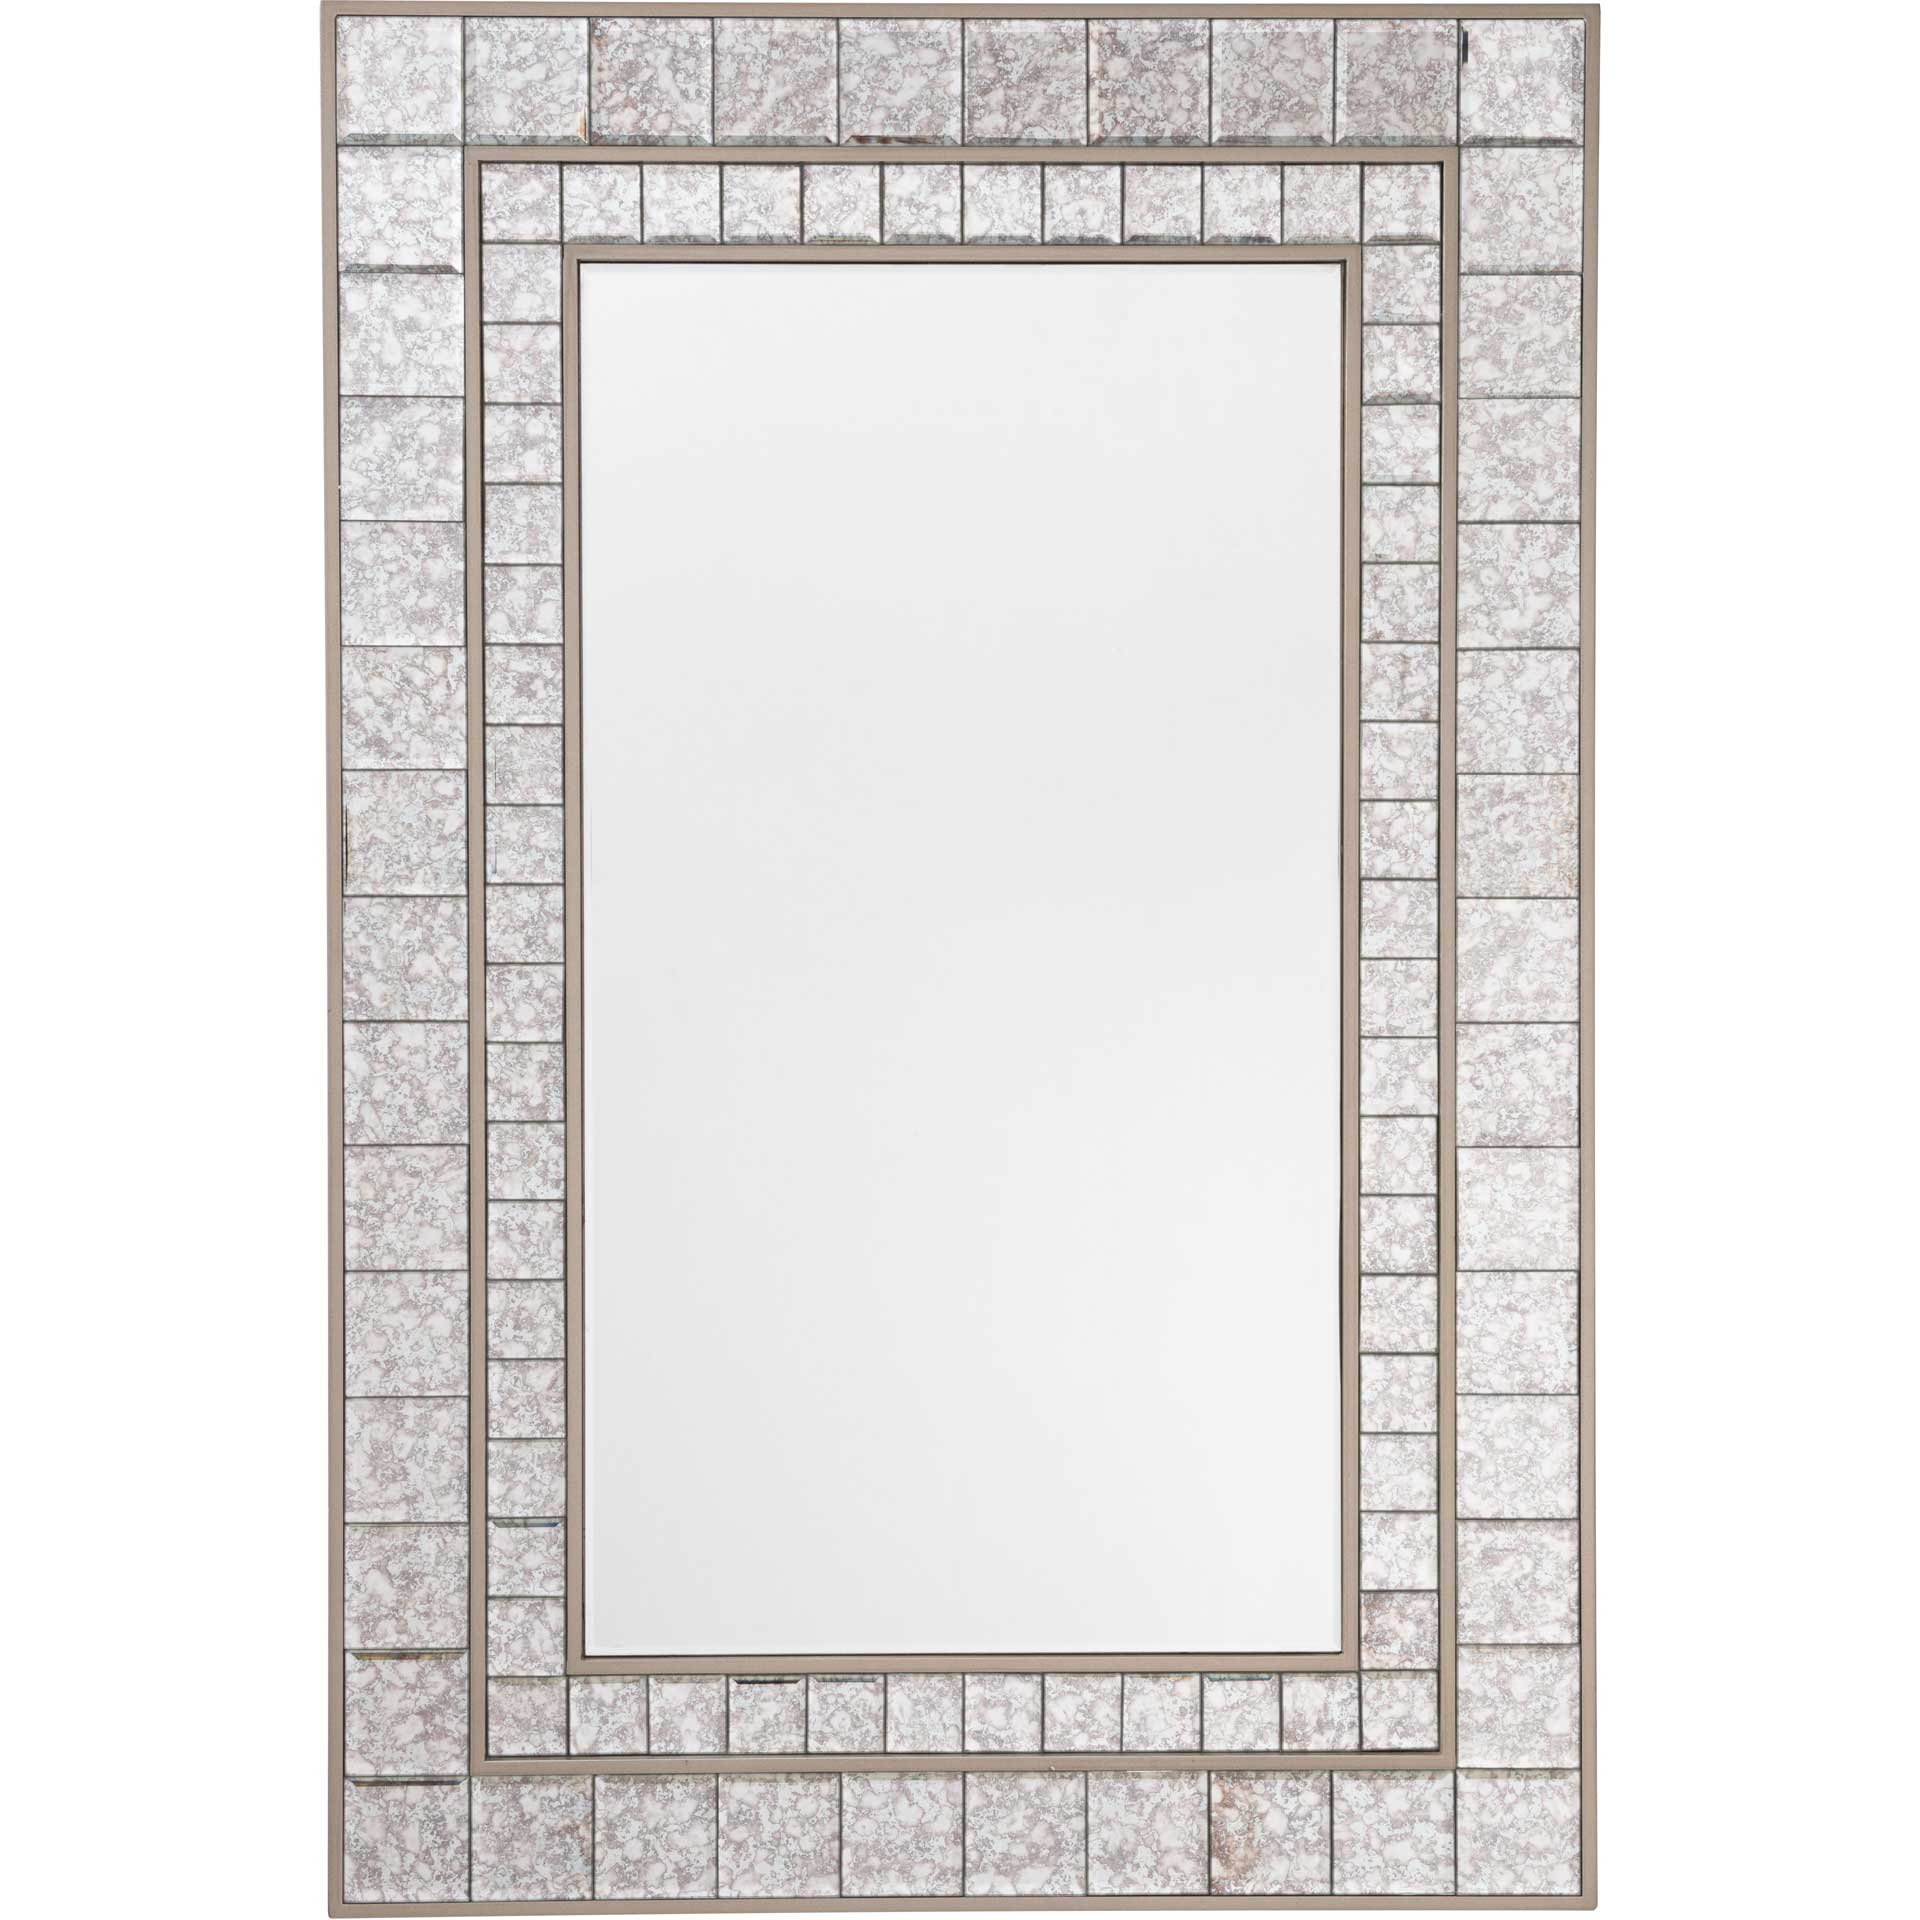 Antique Squares Mirror